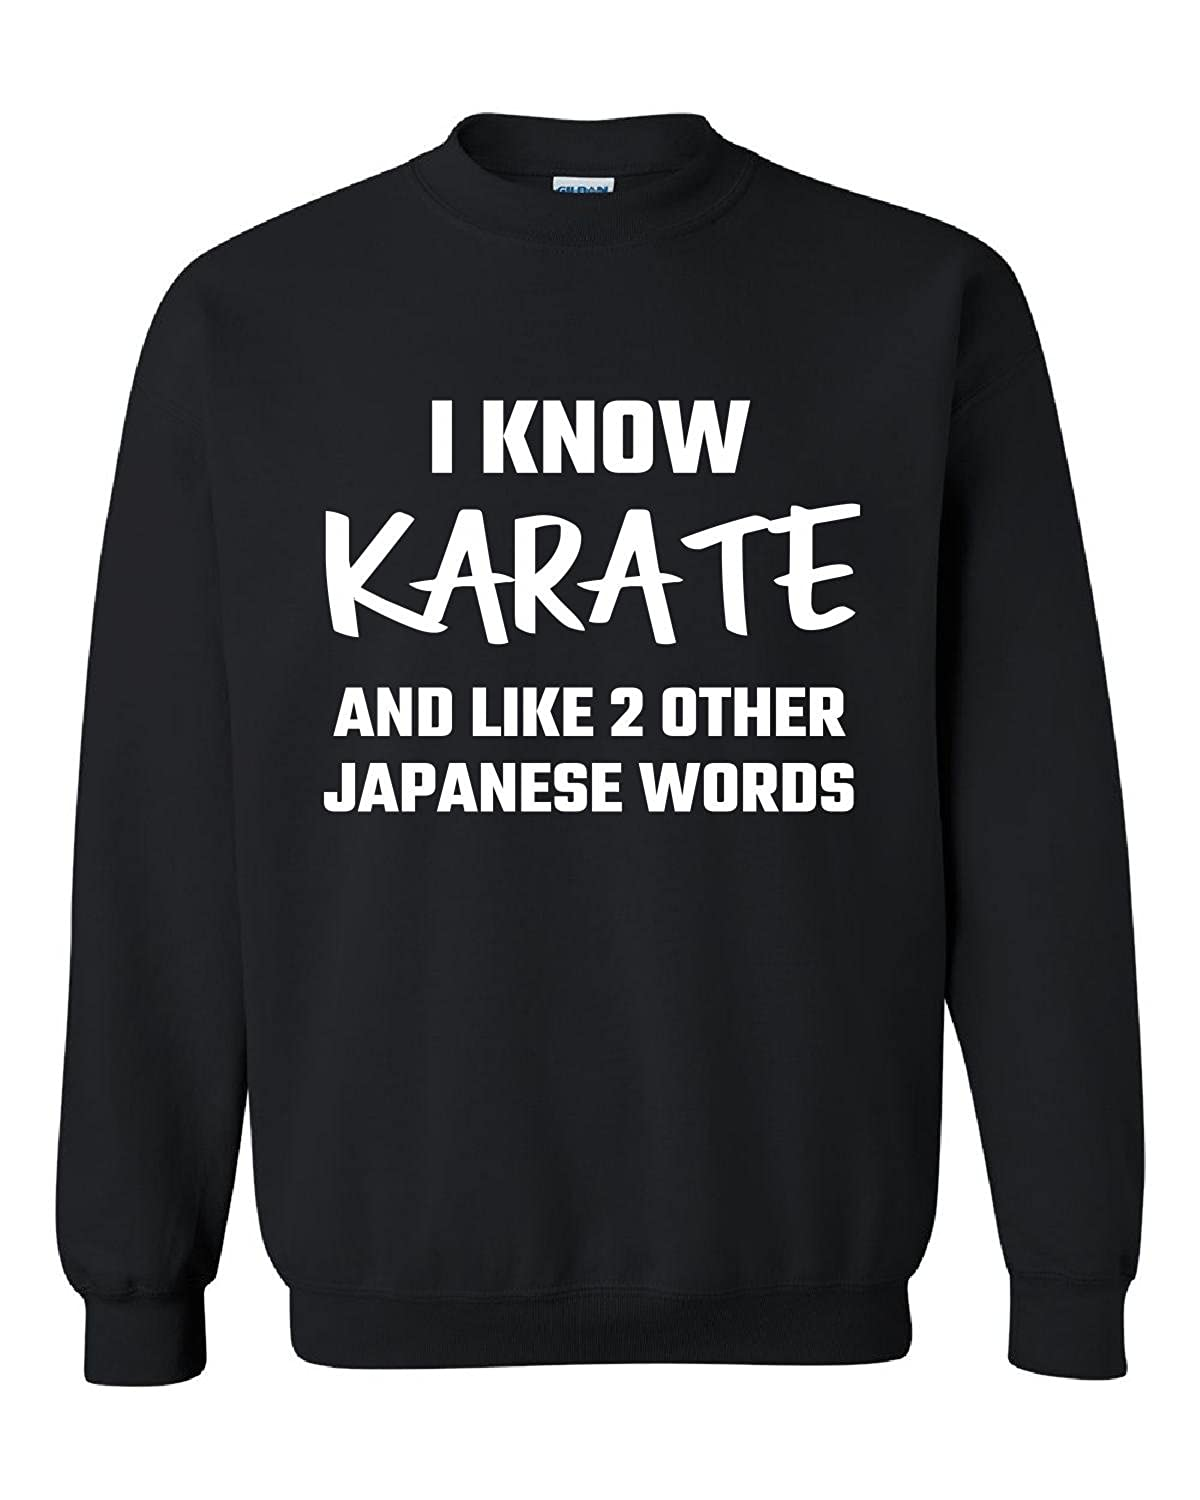 Tees Portals I Know Karate Like 2 Other Japanese Words ...